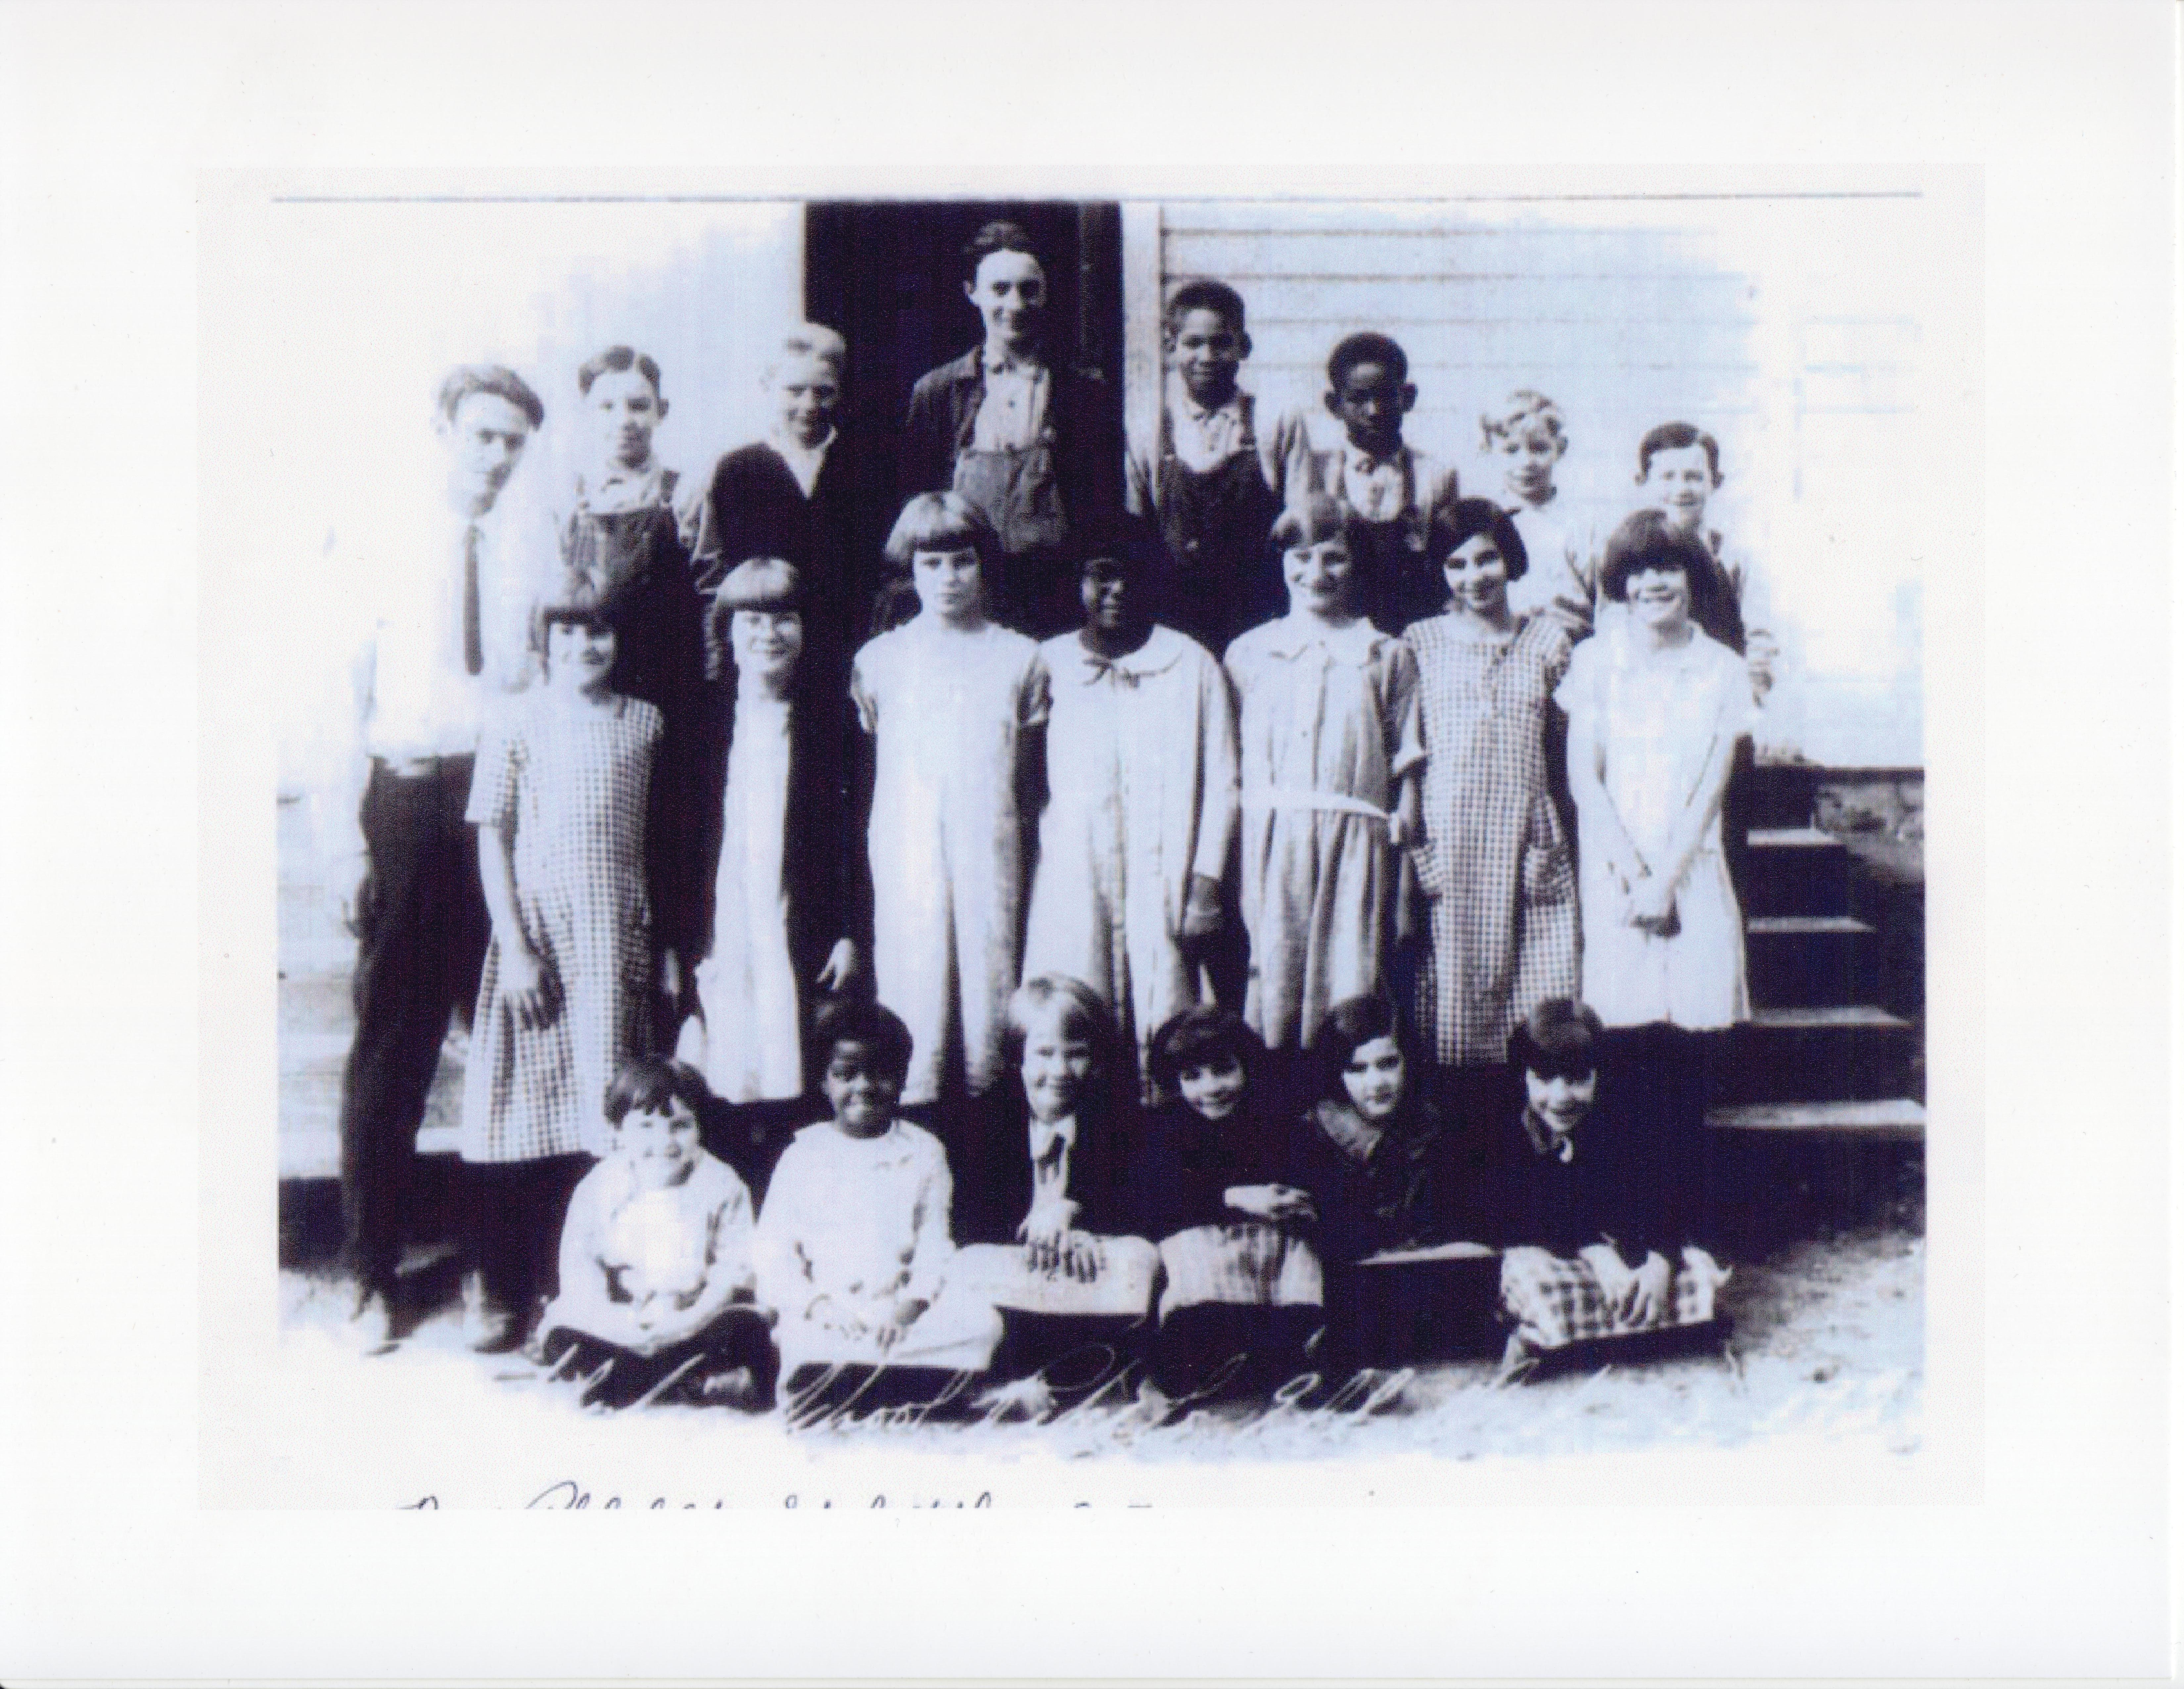 Illinois pike county griggsville - There Were Some School Reunions Held In The 1950s With Many Of The Former Students Teachers And Families Attending Pike County Illinois Schools